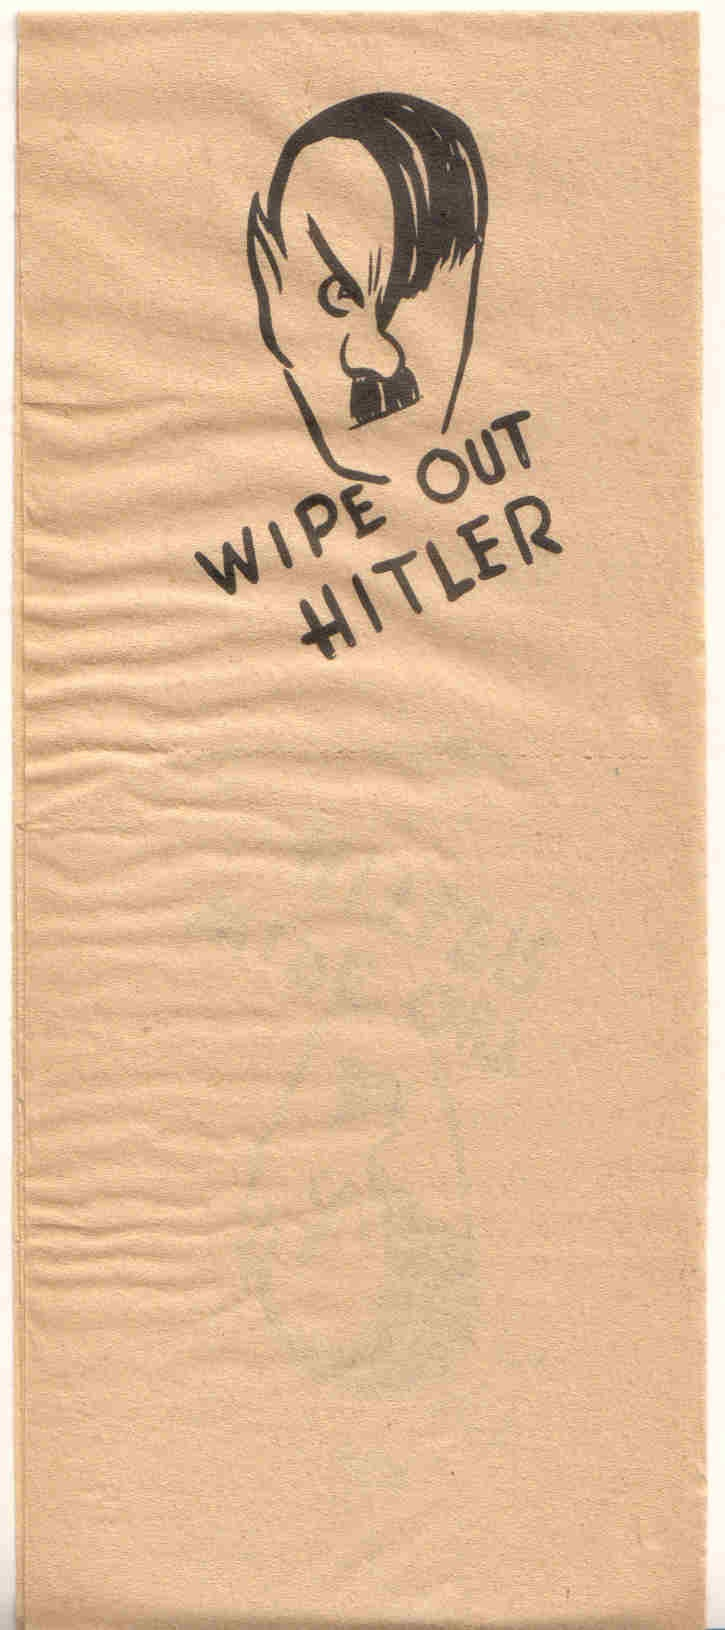 wwii paper Essay, term paper research paper on world war ii.